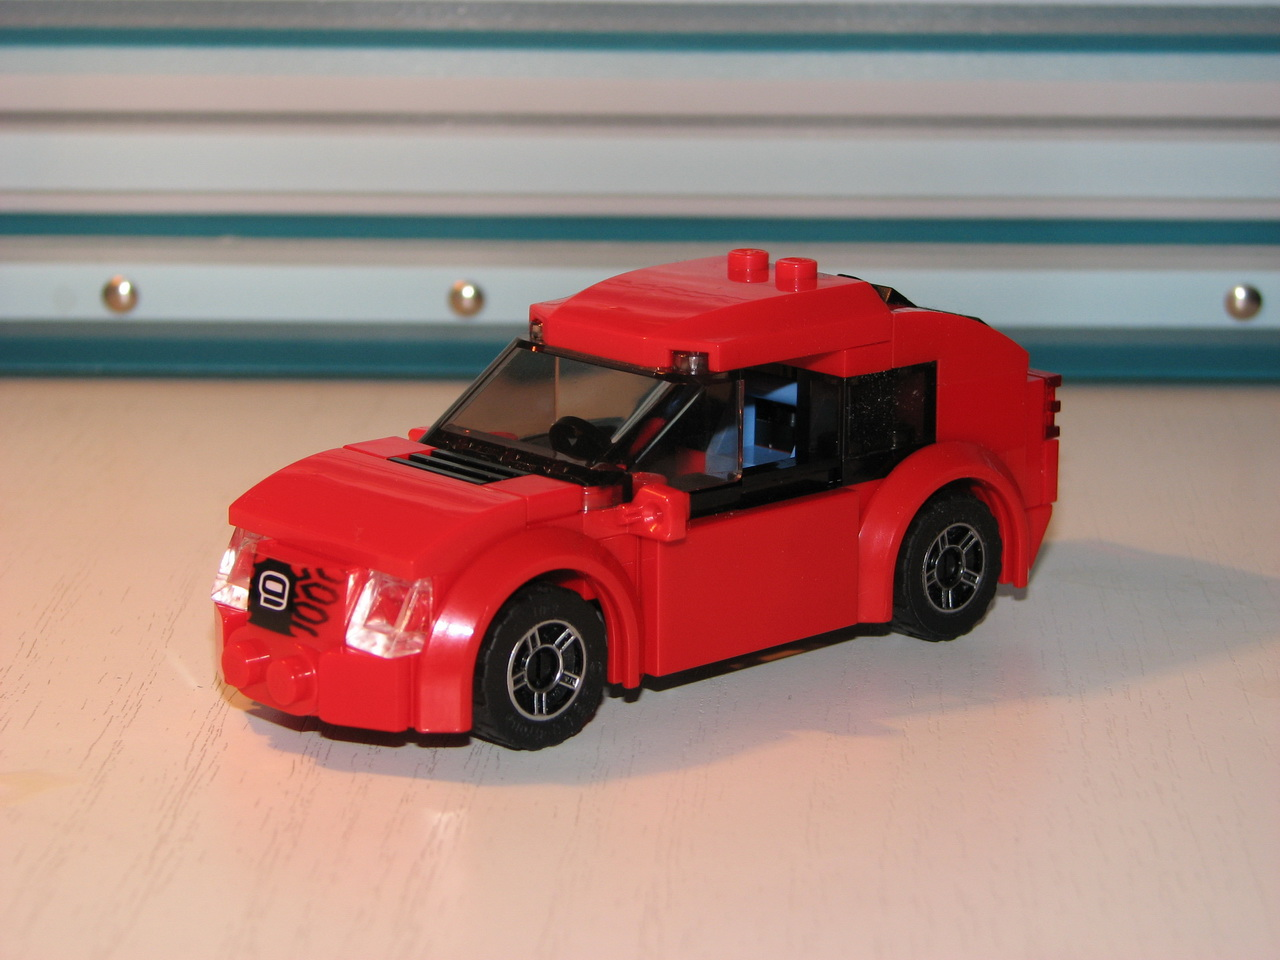 Red Sport Car: A LEGO® Creation By Lego Amaryl From Trantor : MOCpages.